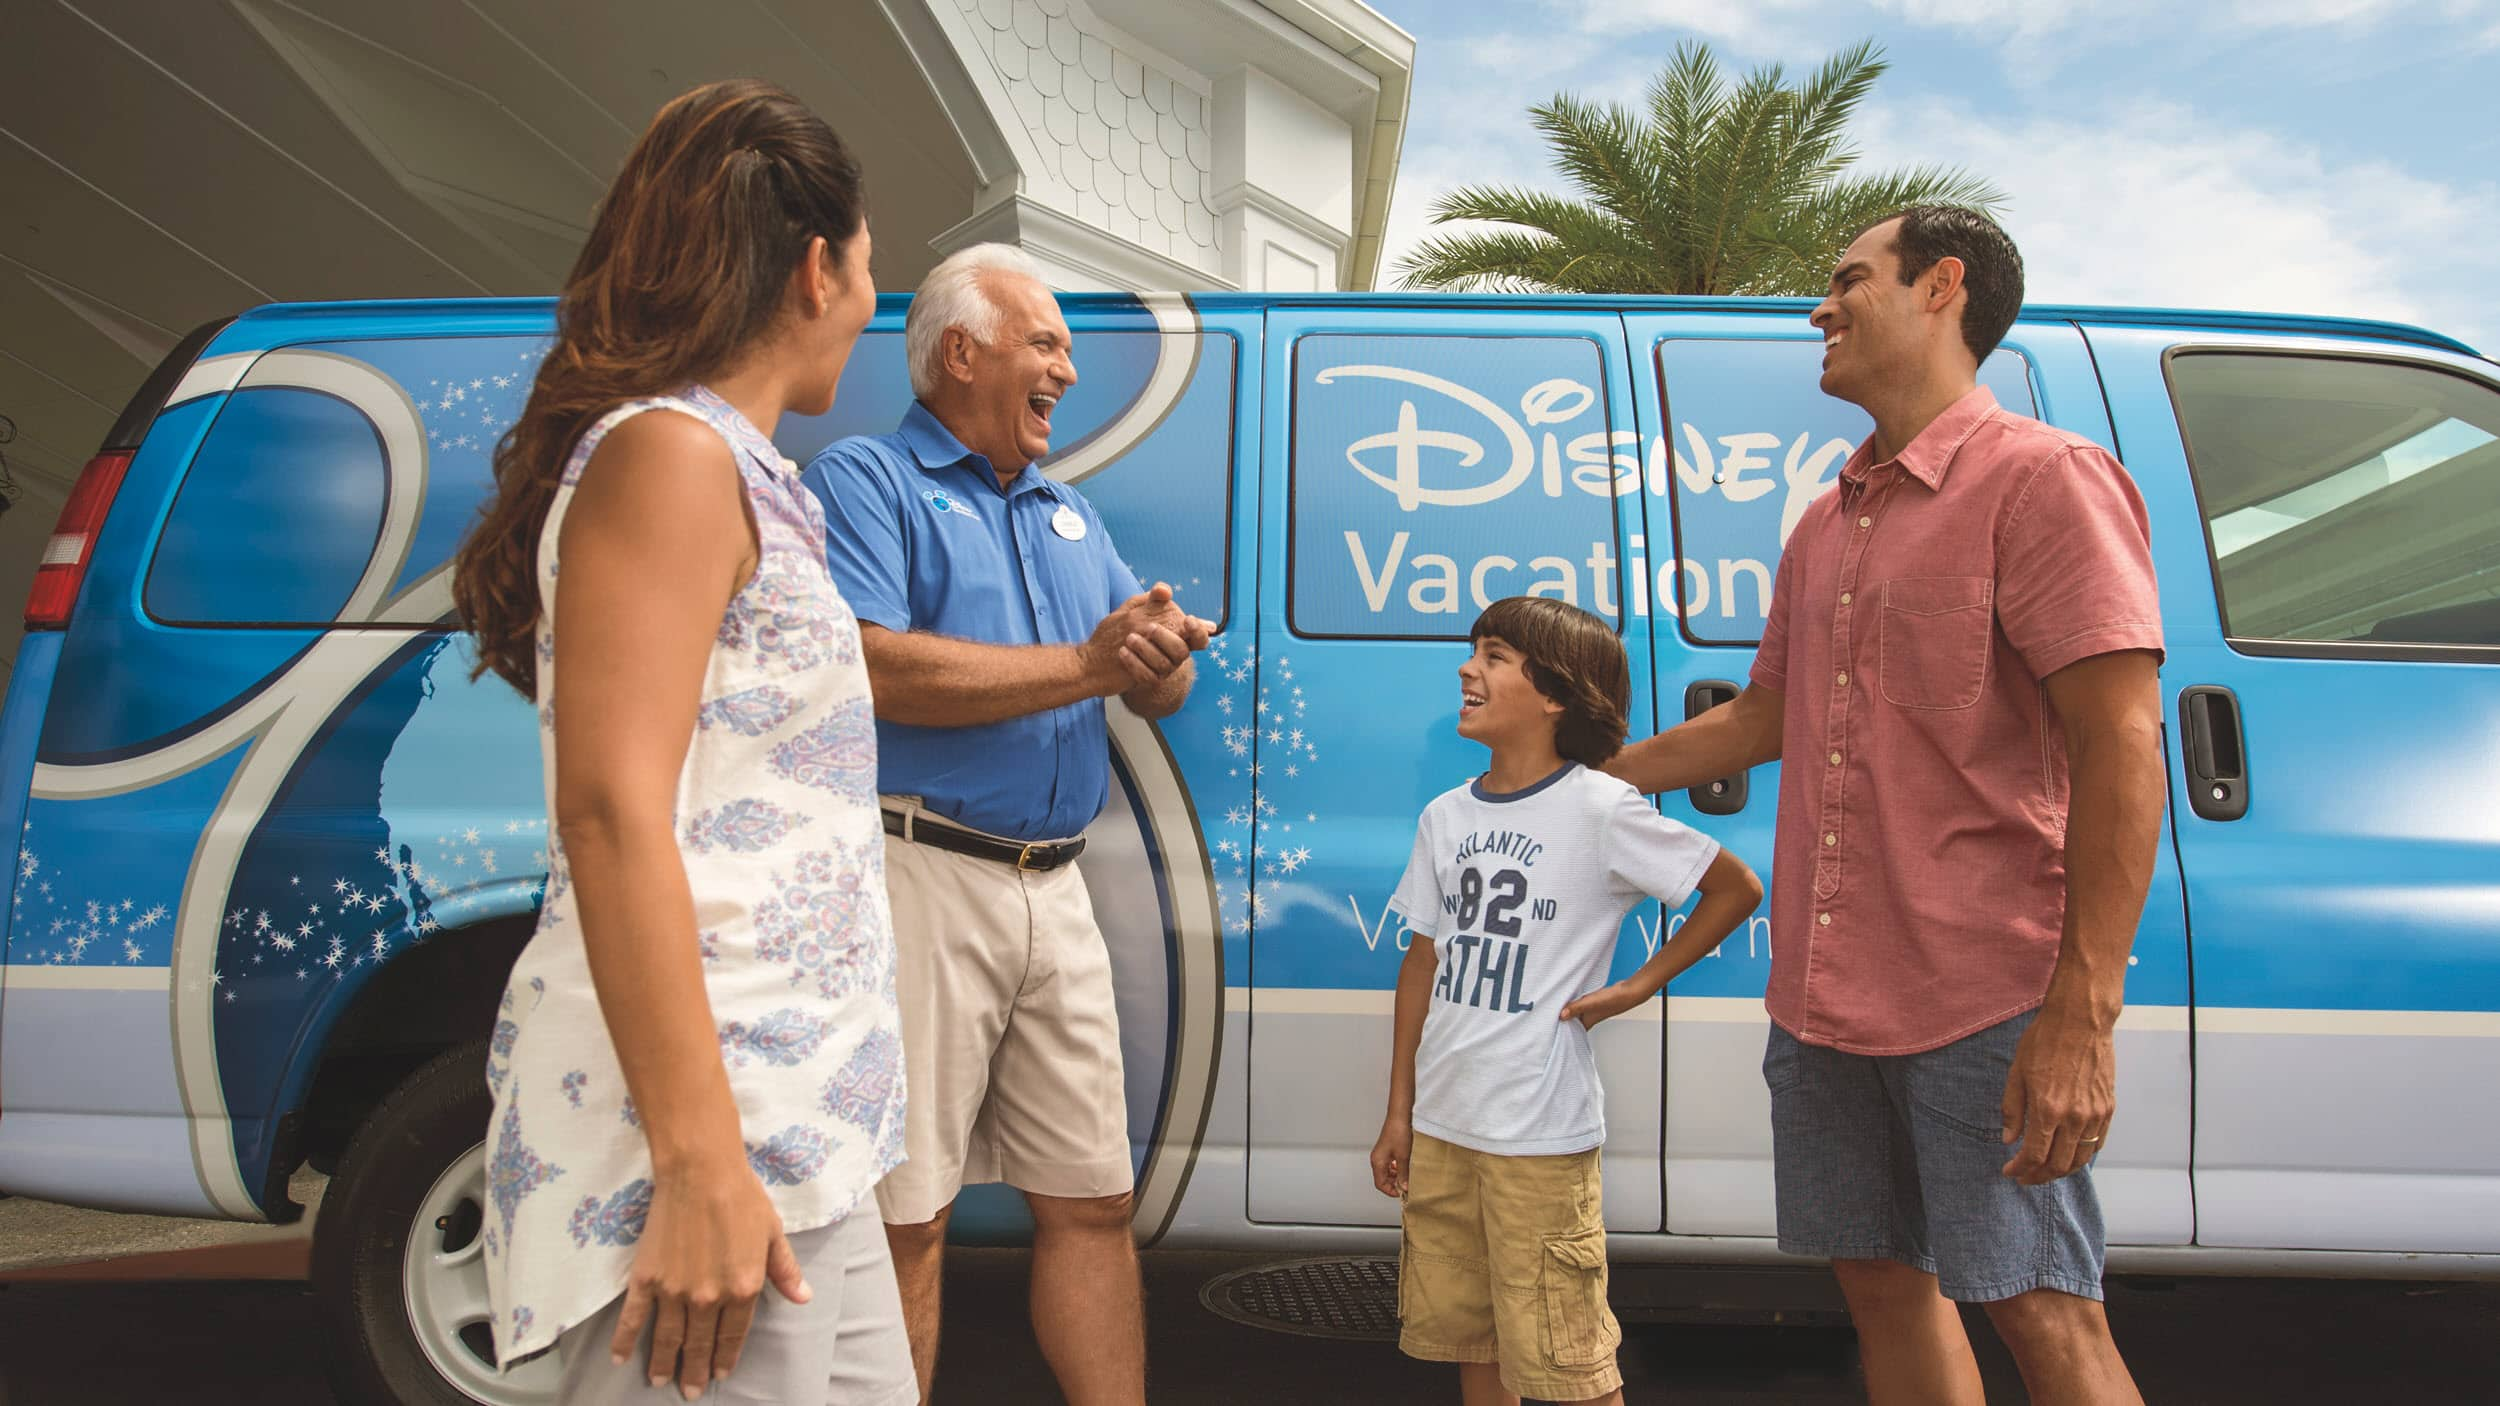 A Disney Cast Member talking to a man, woman and their son beside a Disney Vacation Club van